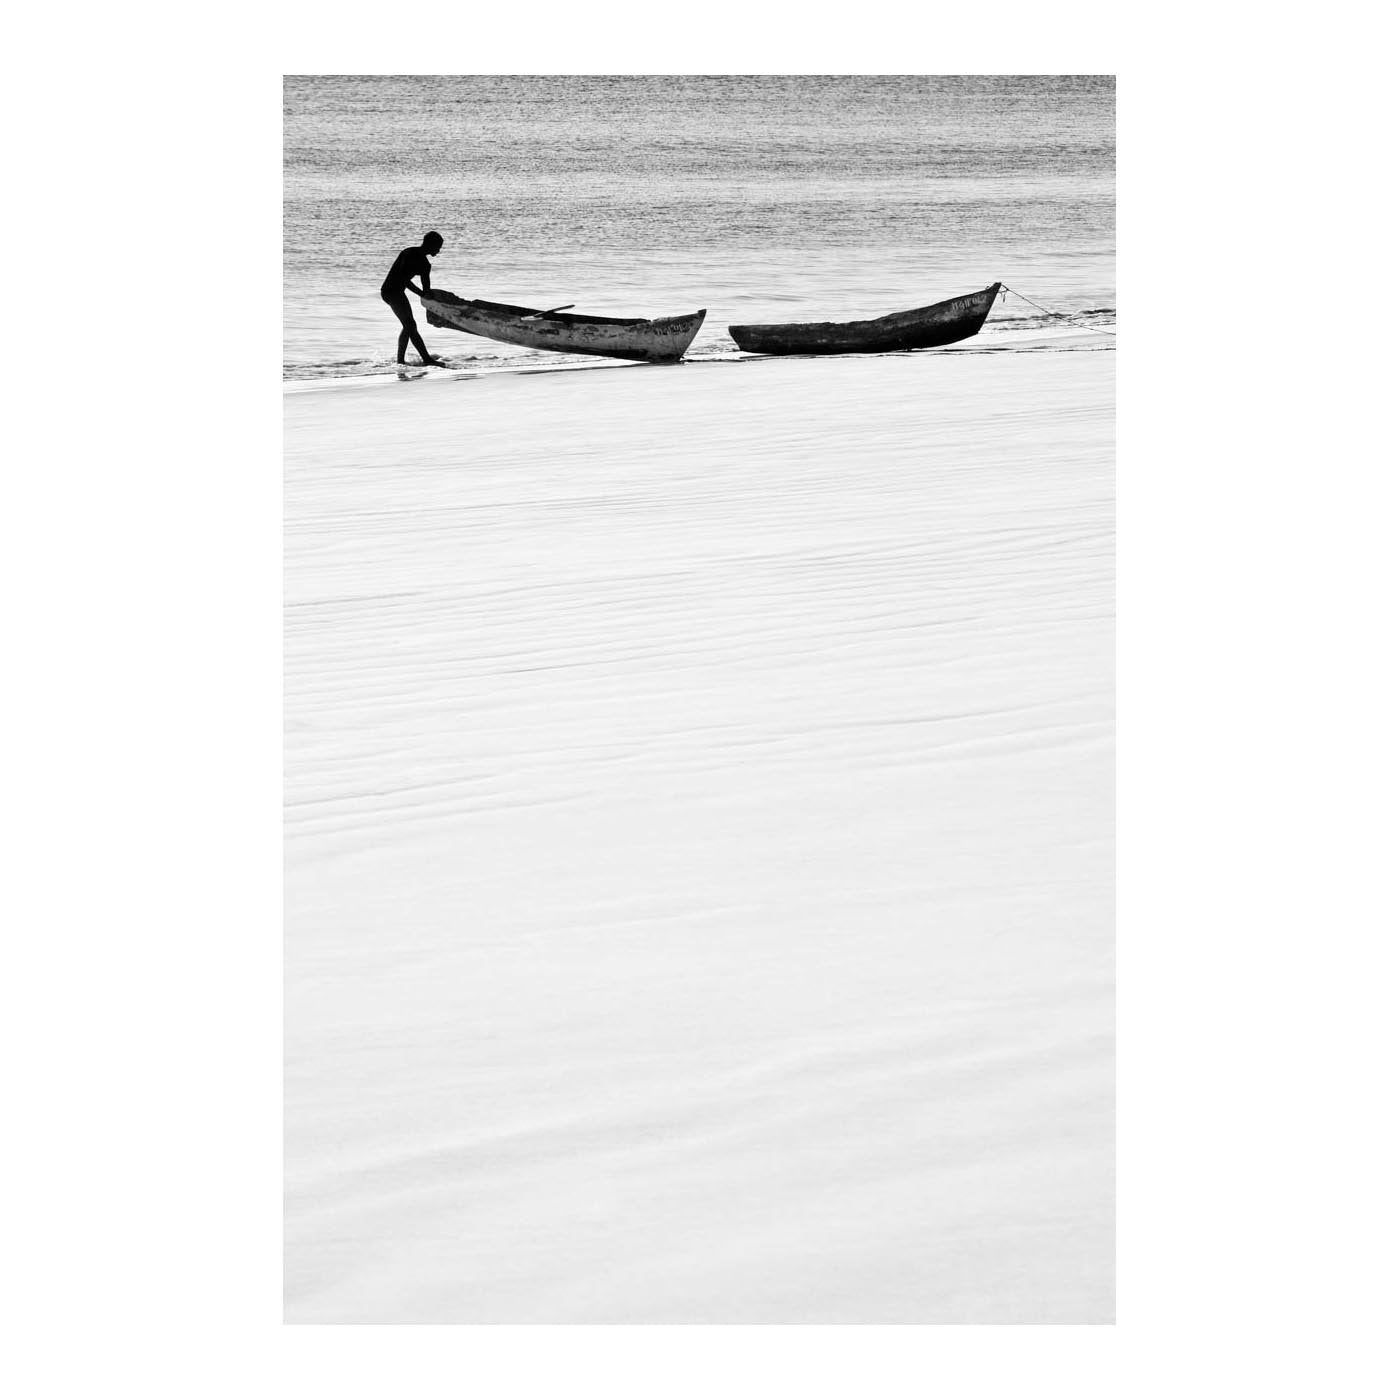 ILHA_07 BY DAVID BALLAM. Dugouts, Chocas Mar, Moçambique. This piece is from Ilha Collection by South African fine arts photographer David Ballam. It features a beautiful seascape view of fishermen at work.